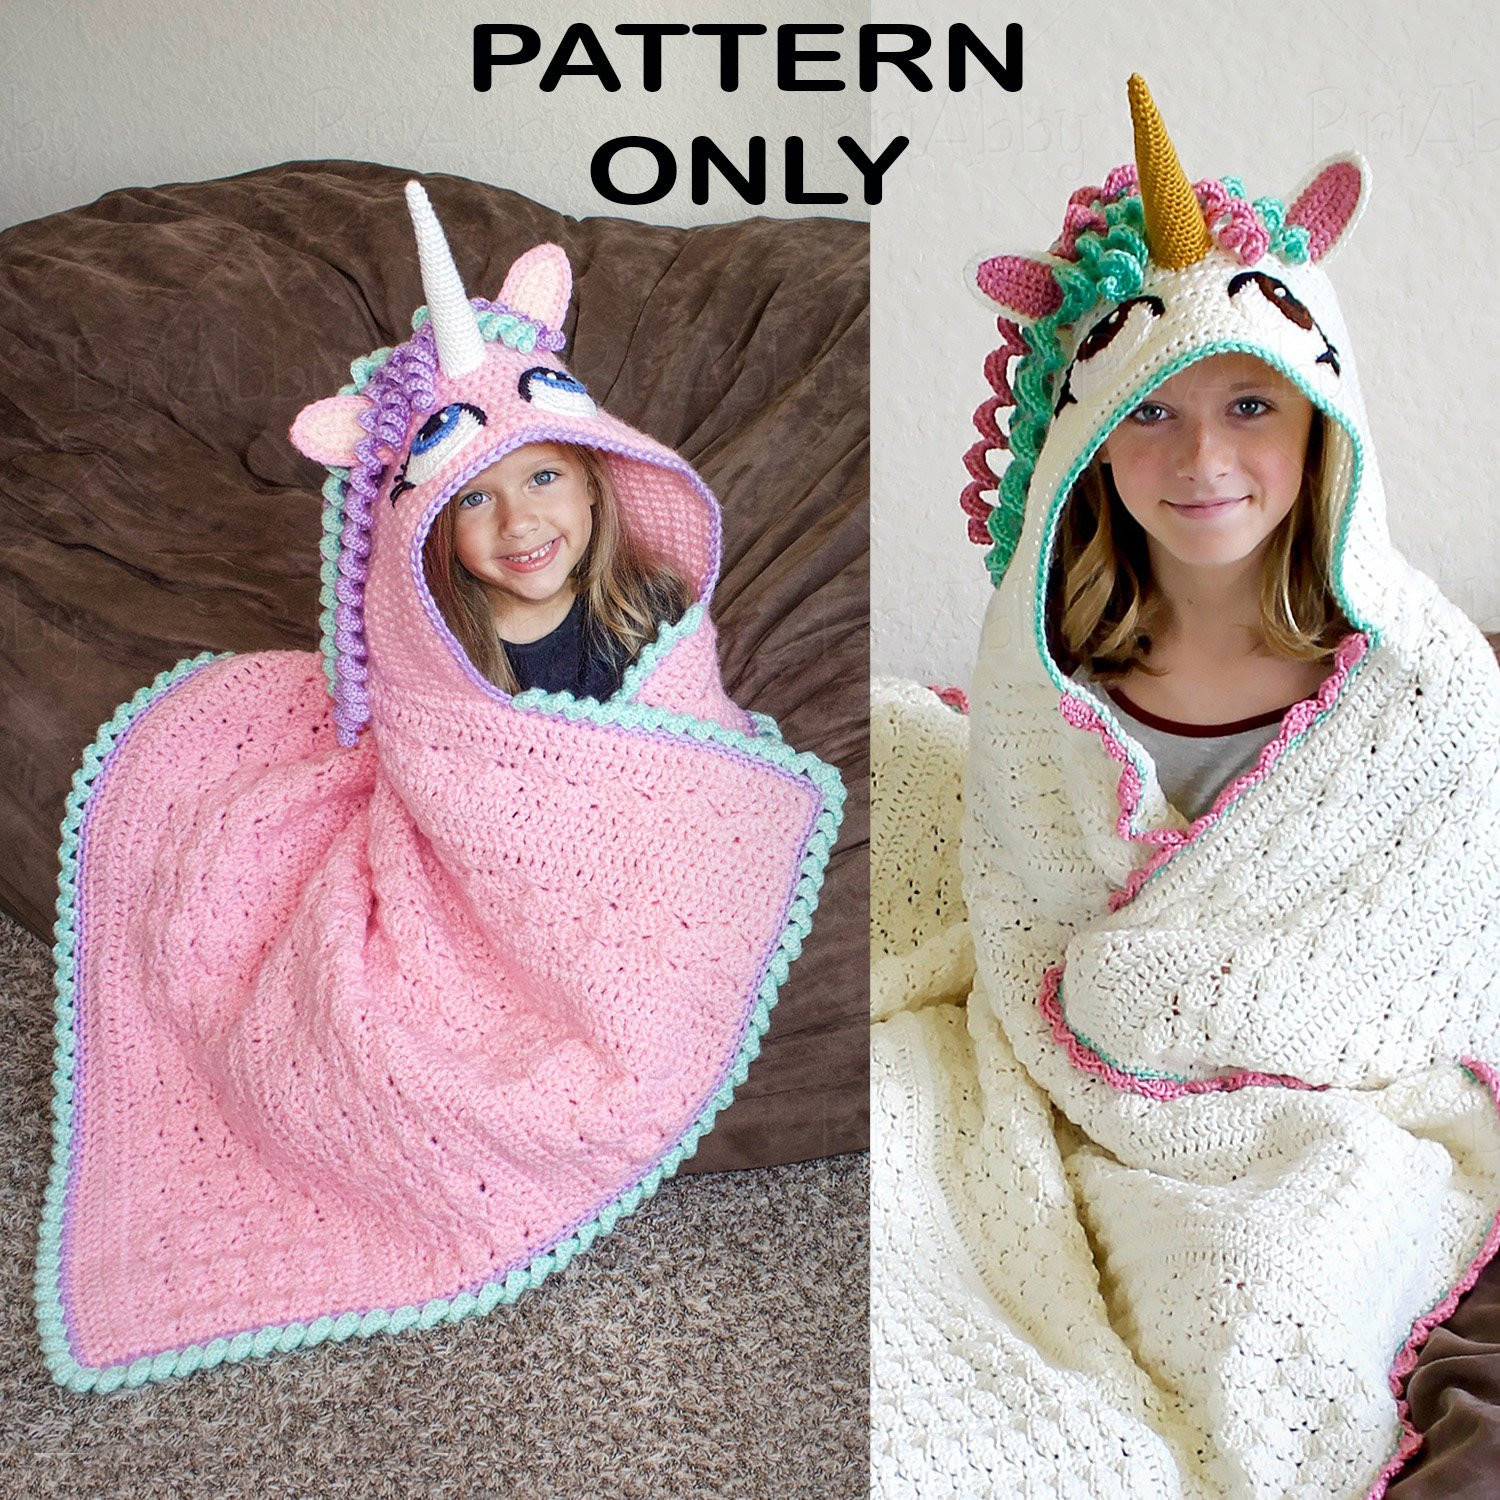 Crochet Unicorn Blanket Fresh Crochet Pattern Hooded Unicorn Blanket Pattern Pdf File Of Charming 44 Ideas Crochet Unicorn Blanket